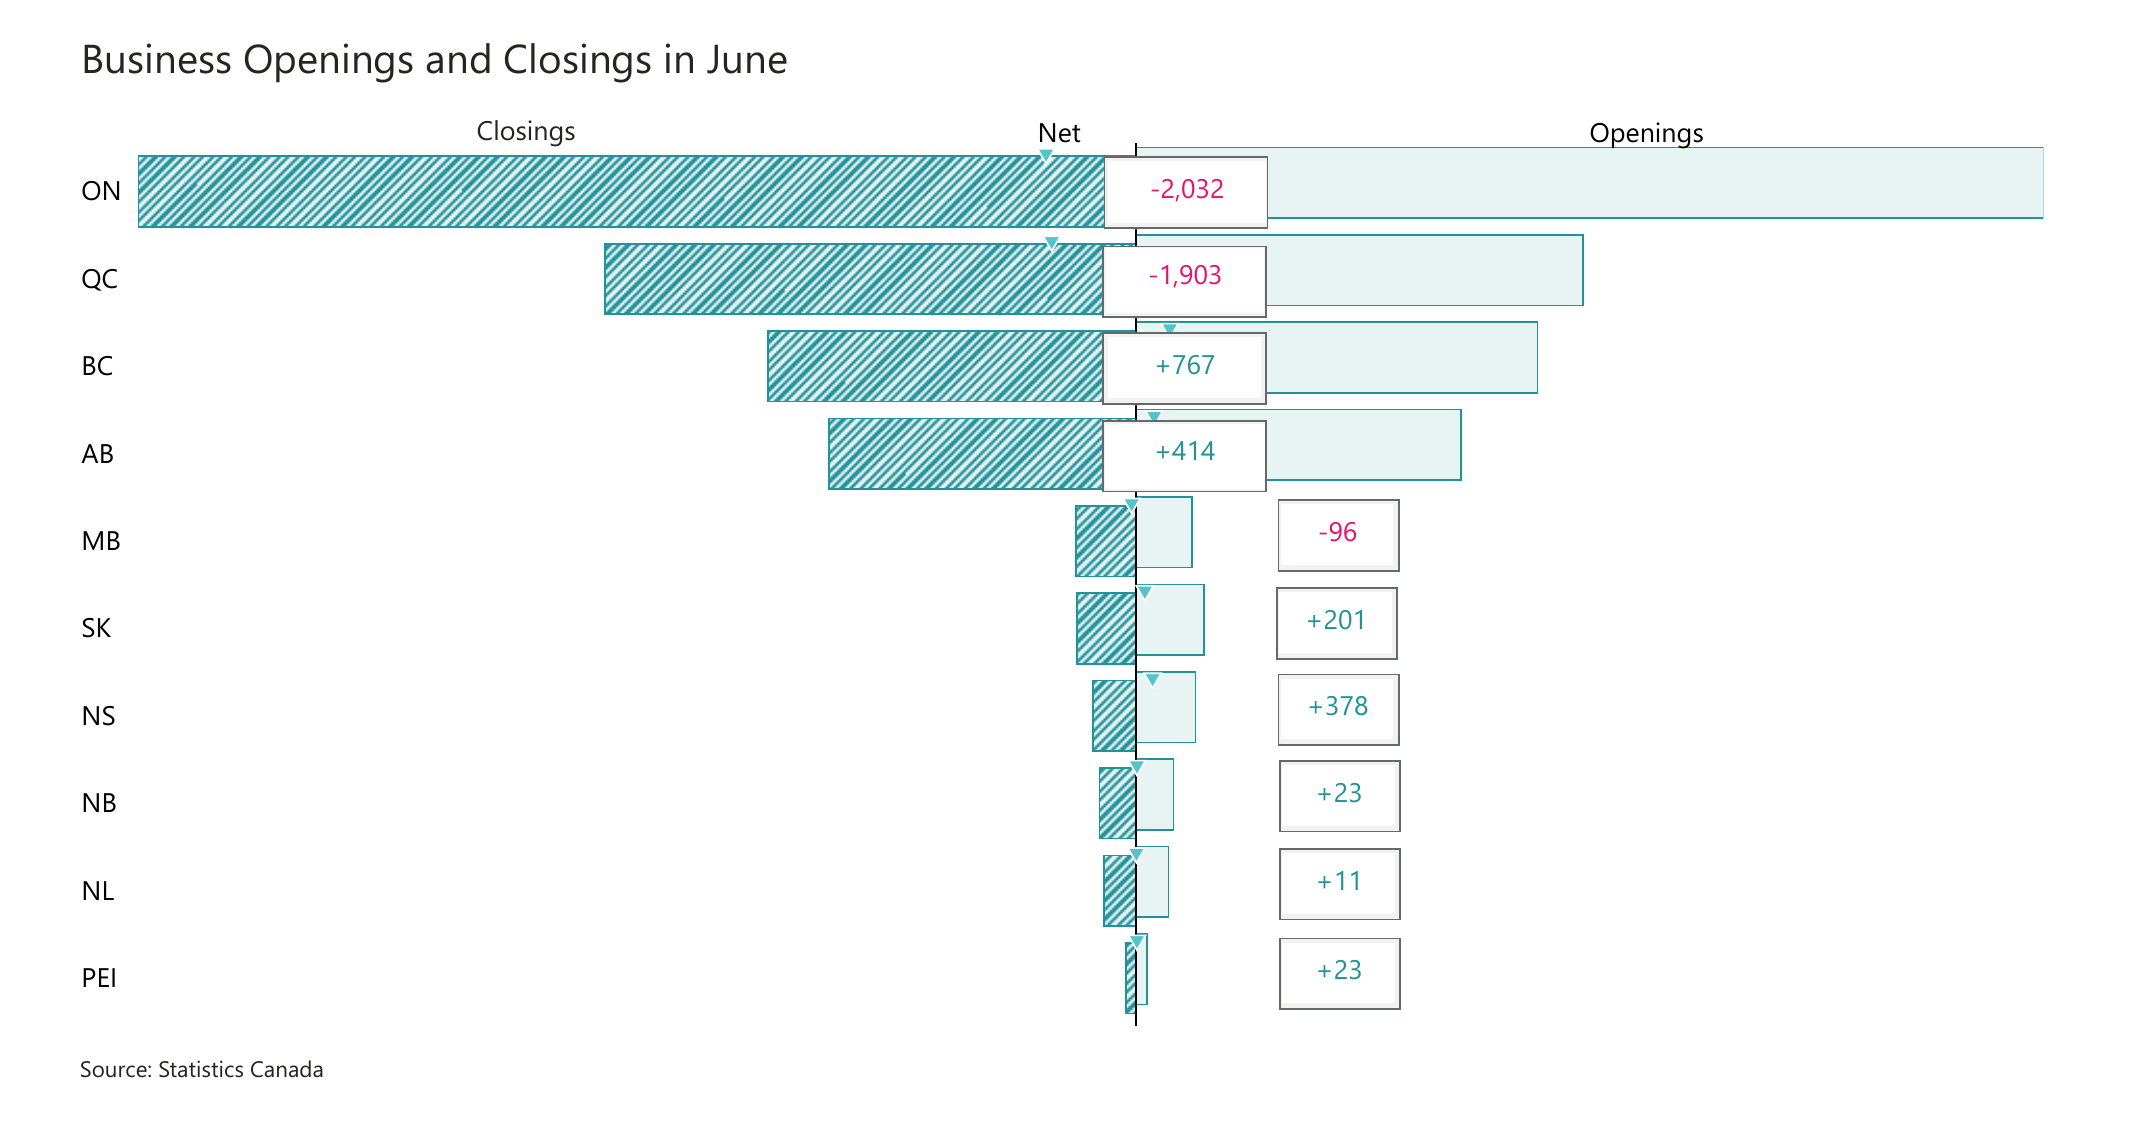 Business Openings and Closings